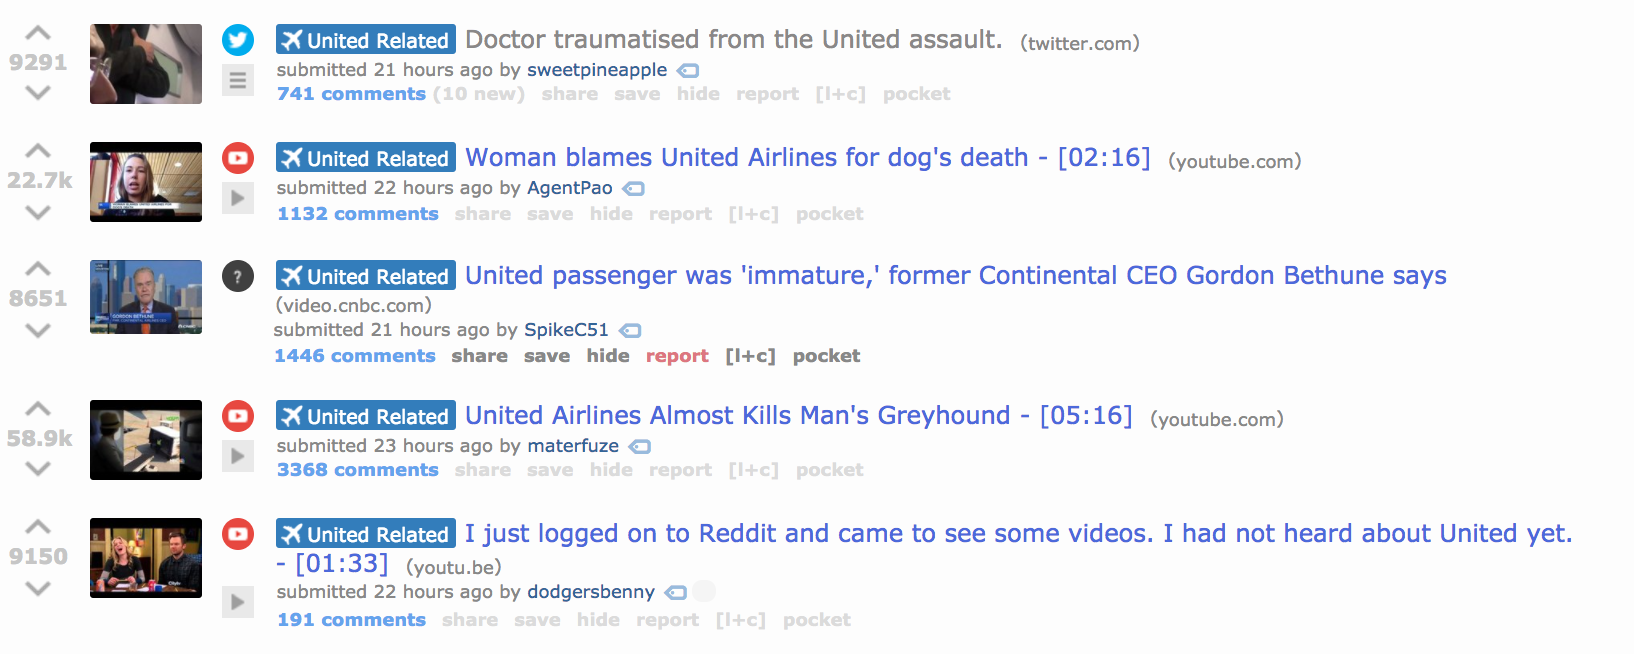 Reddit Revolts After Moderators Delete United Airlines Video - VICE